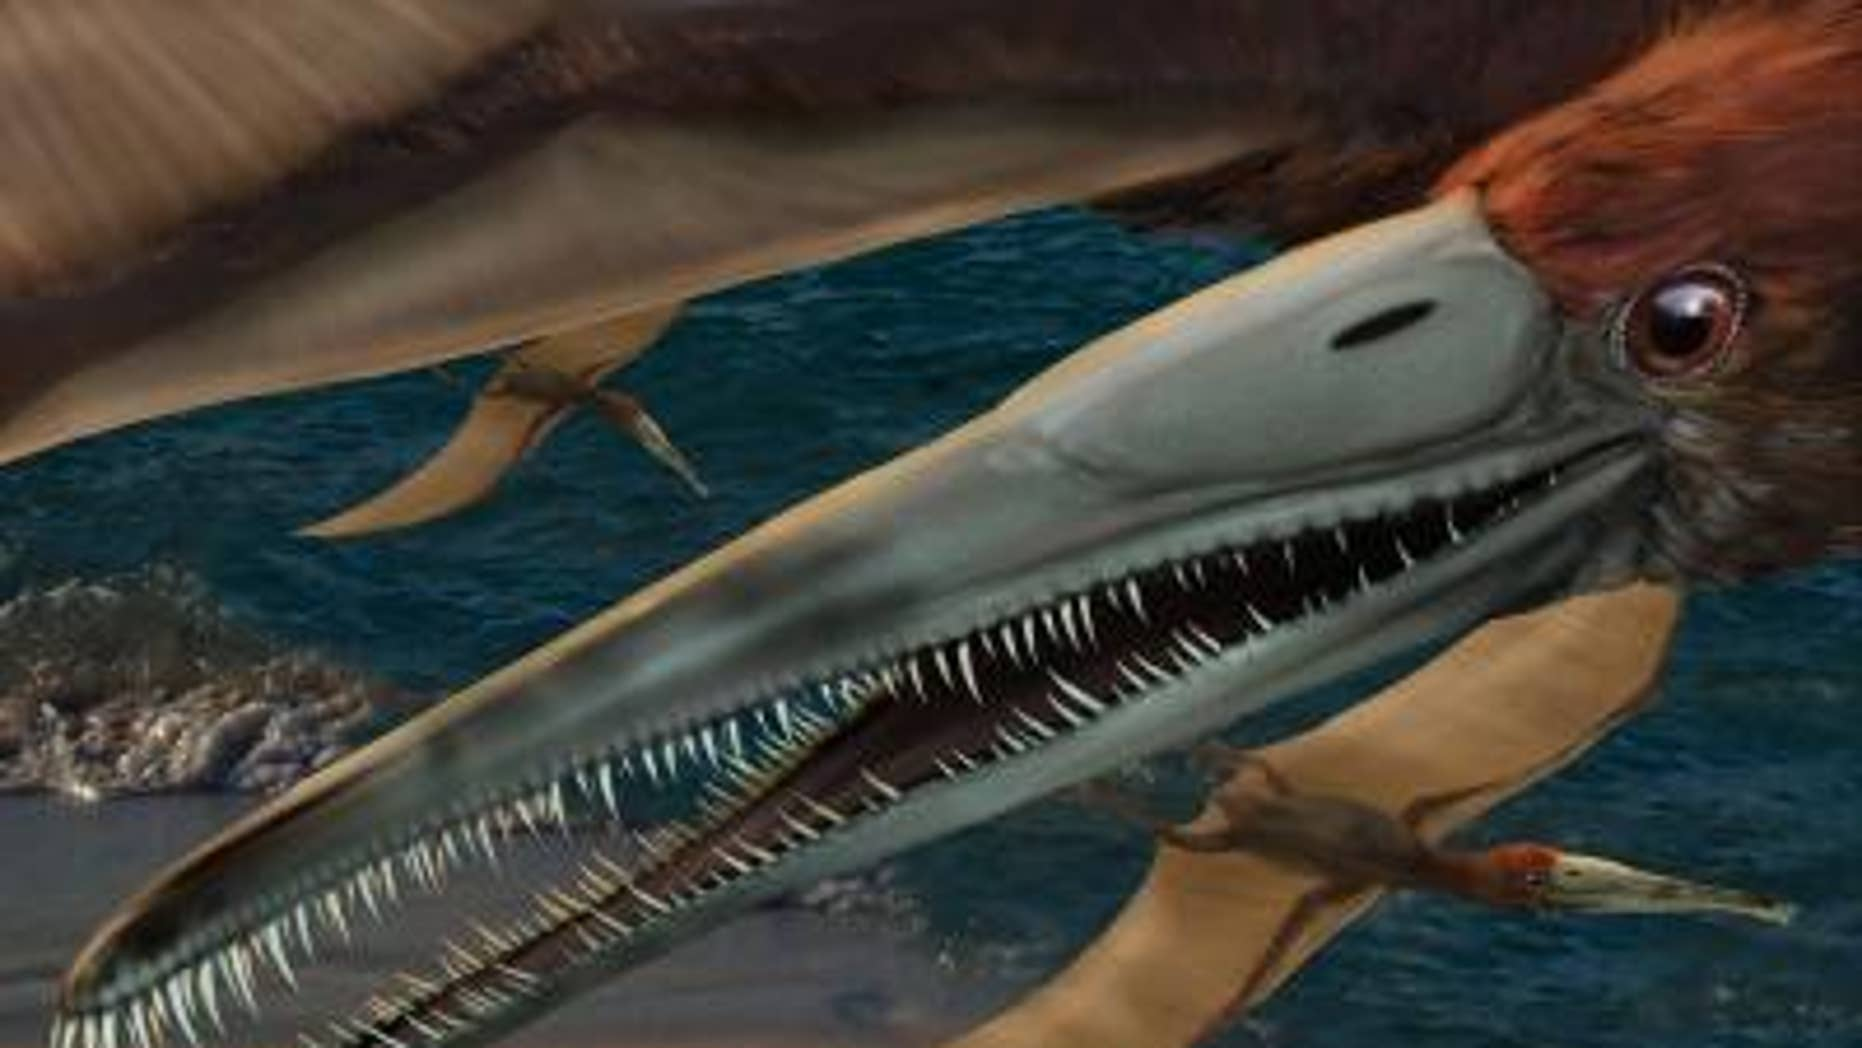 A 95 million-year-old fossilized jaw discovered in Texas has been identified as a new genus and species of flying reptile. Aetodactylus halli, seen in this artist's rendering, was identified and named by paleontologist Timothy S. Myers.